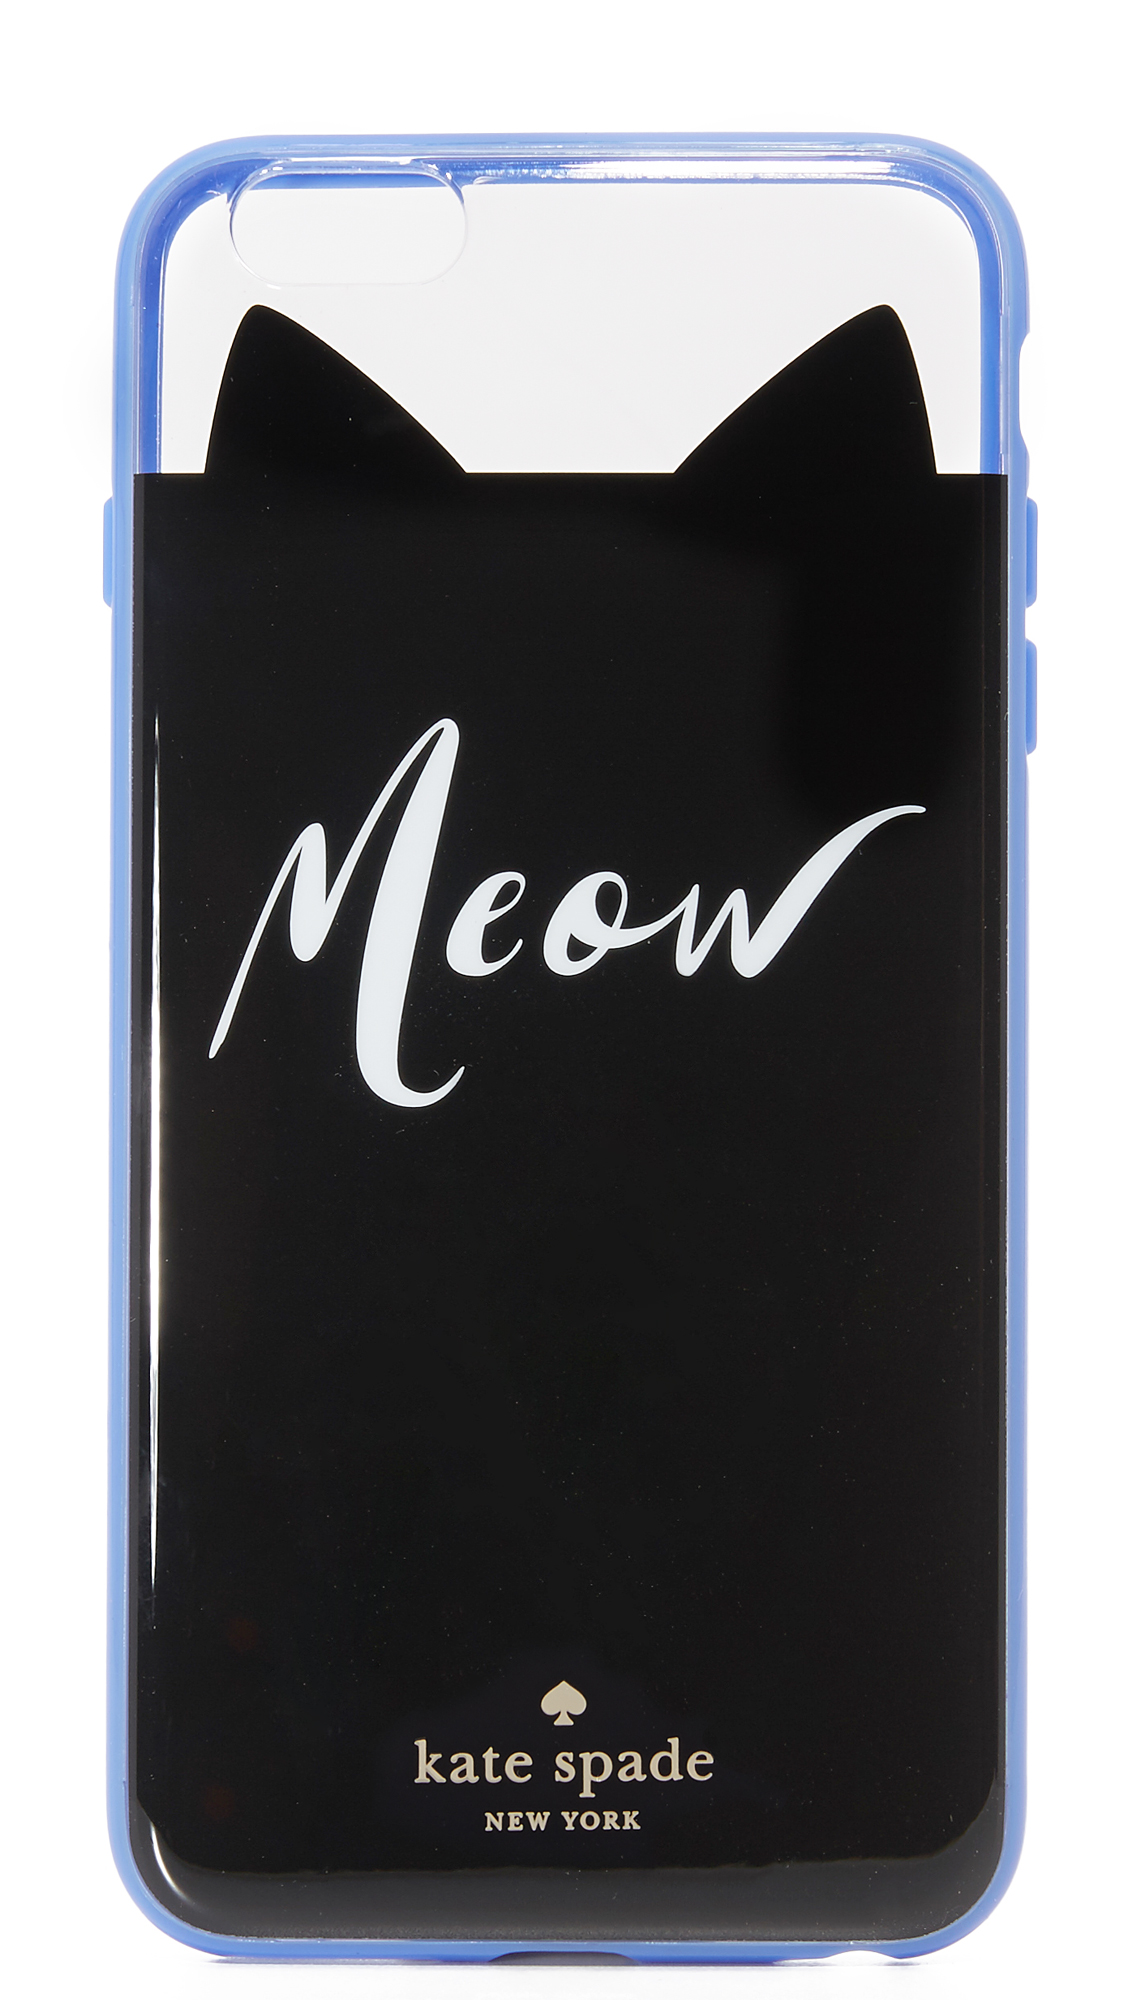 Meow Iphone 6 Plus 6s Plus Case